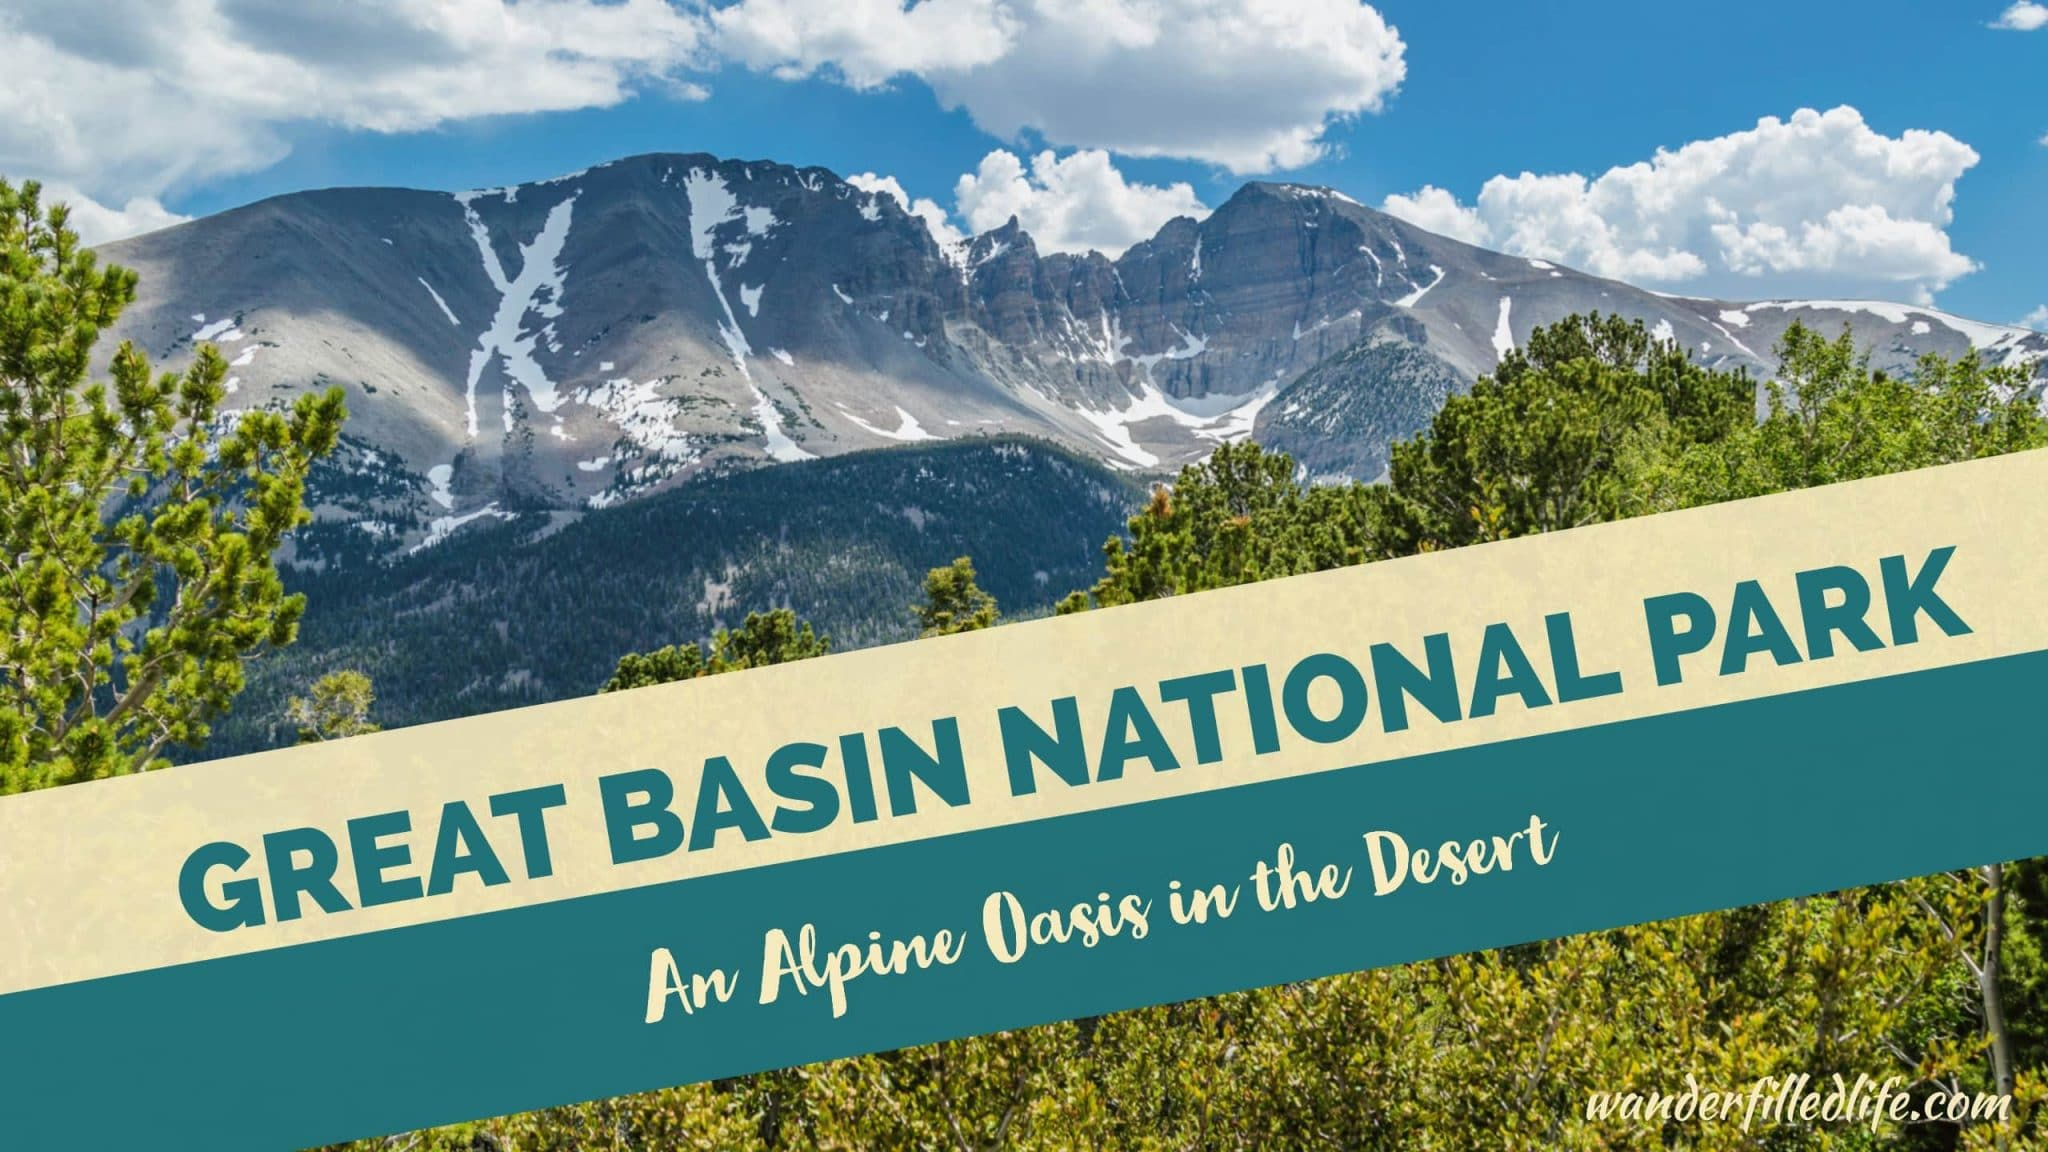 Great Basin National Park: An Alpine Oasis in the Desert